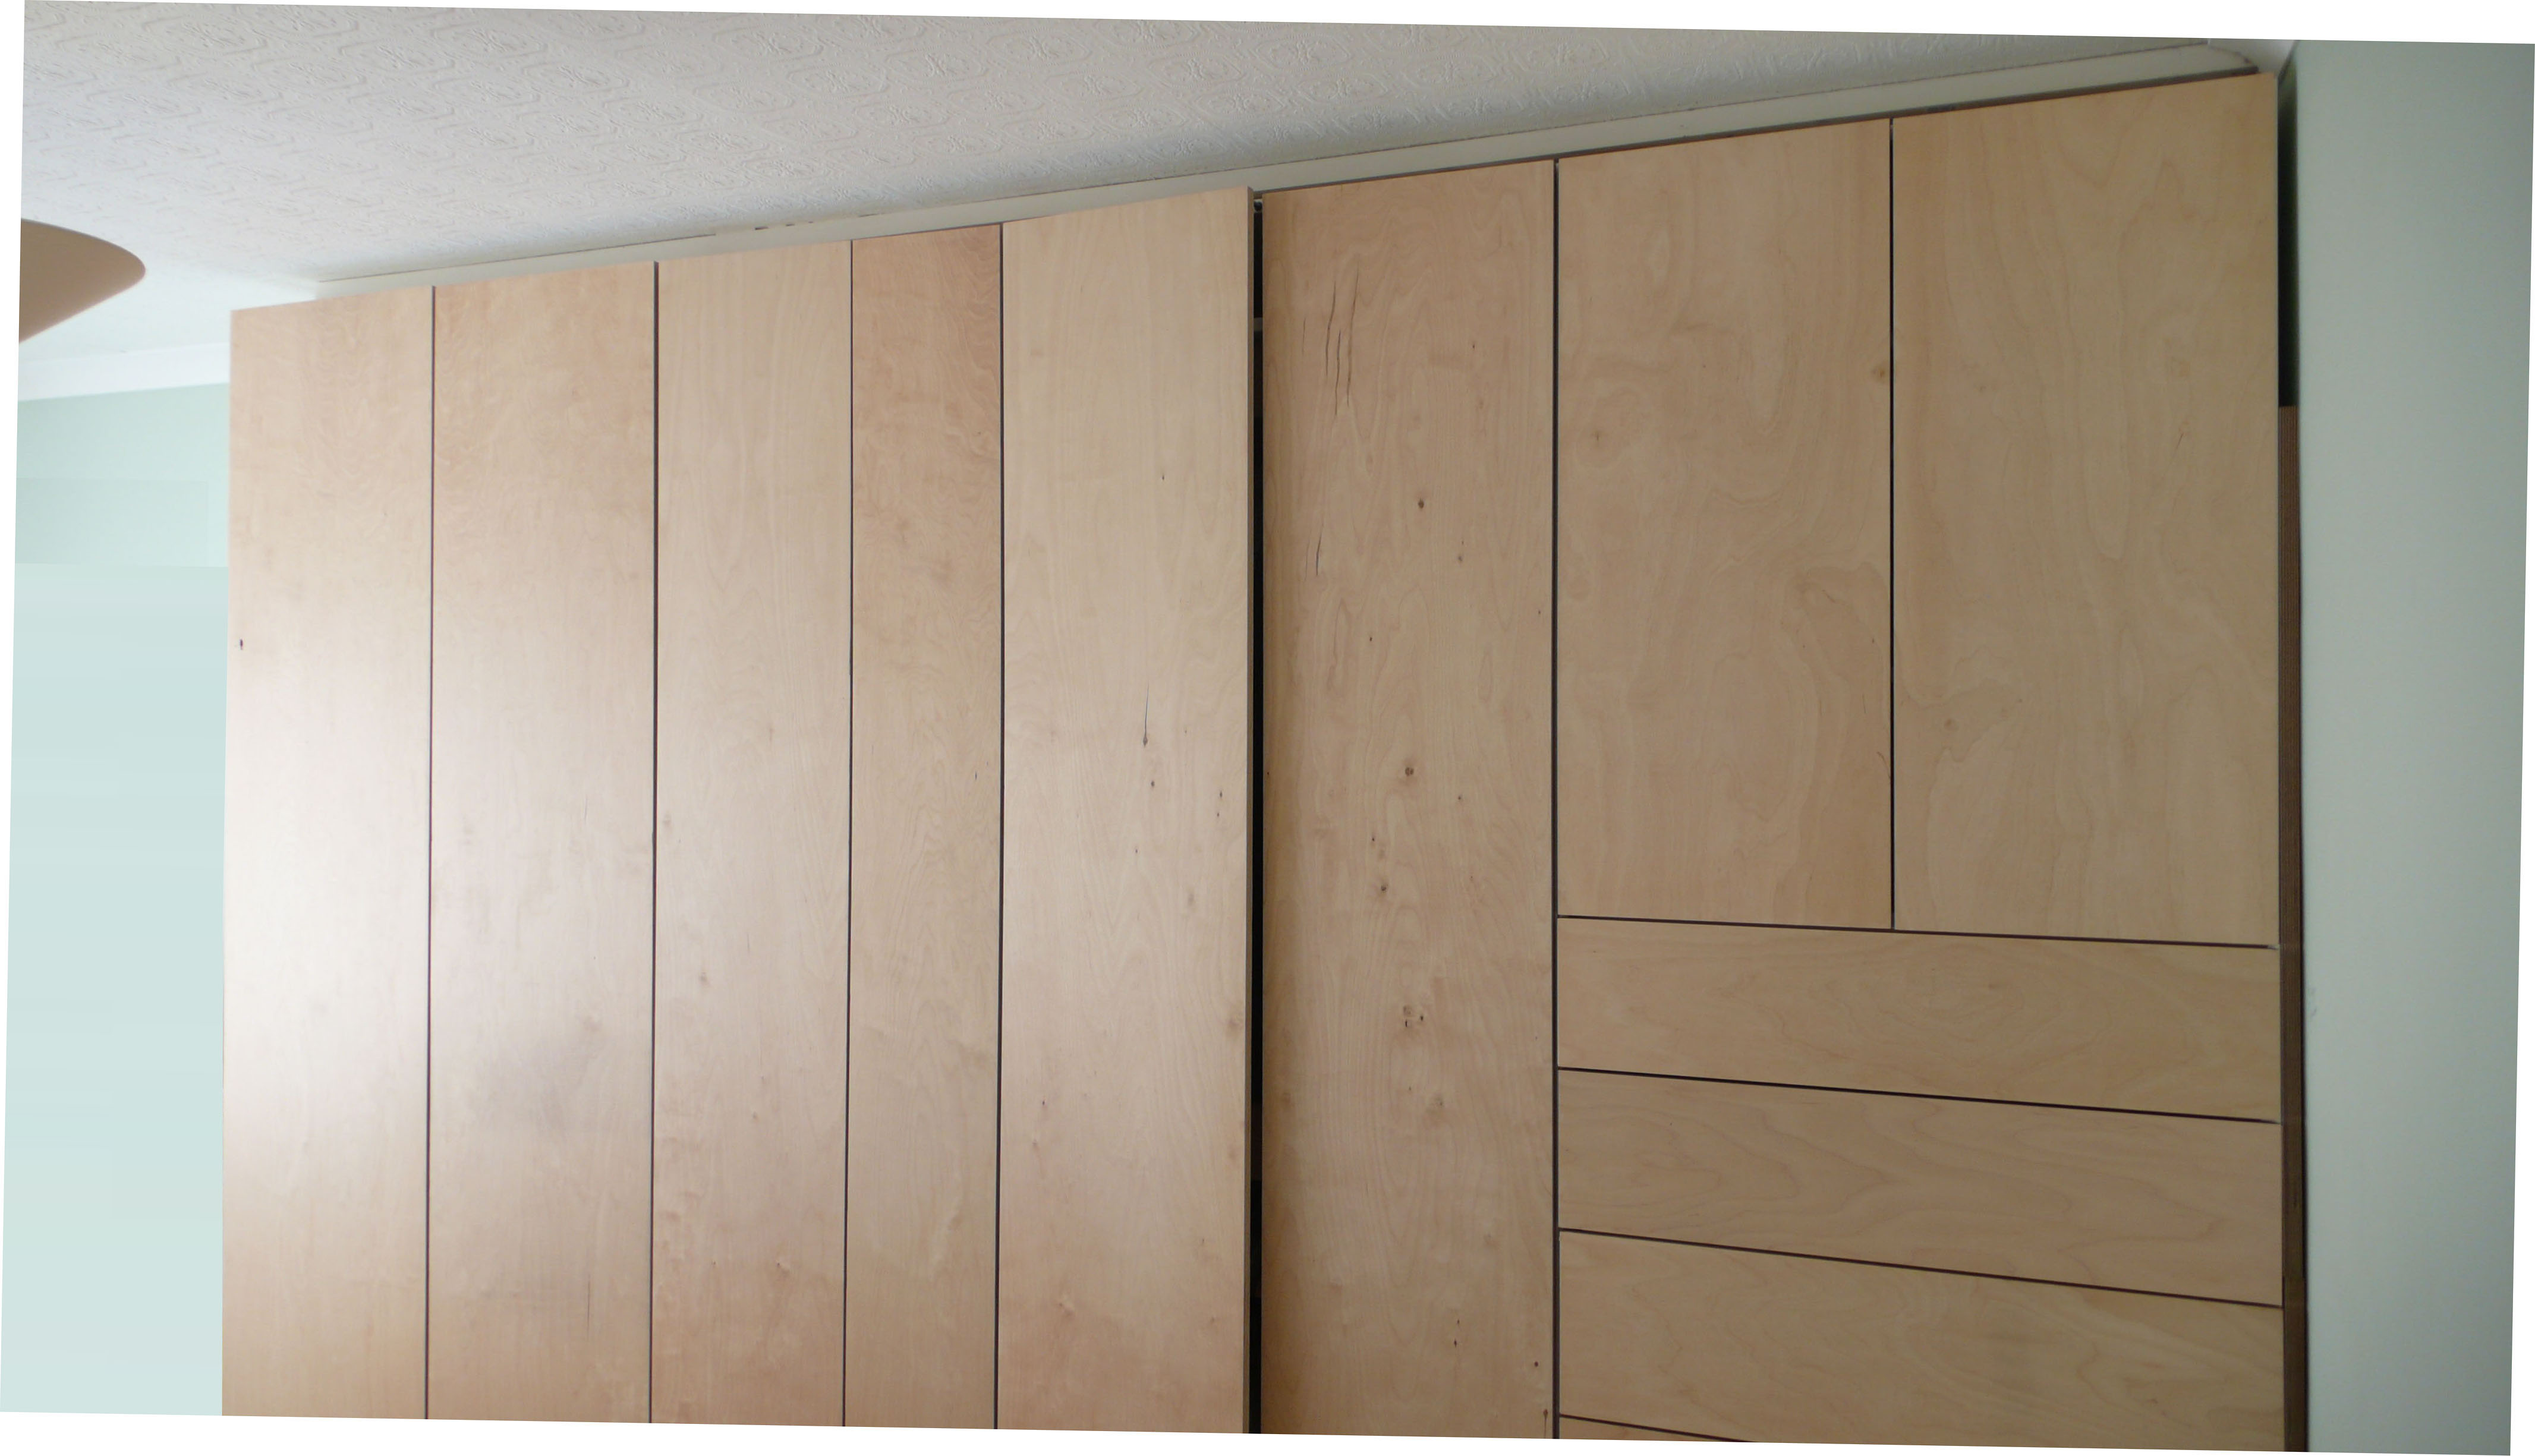 Bedroom Built In Wardrobe Designs How To Build Your Own Fitted Wardrobe And Also How Not To Do It